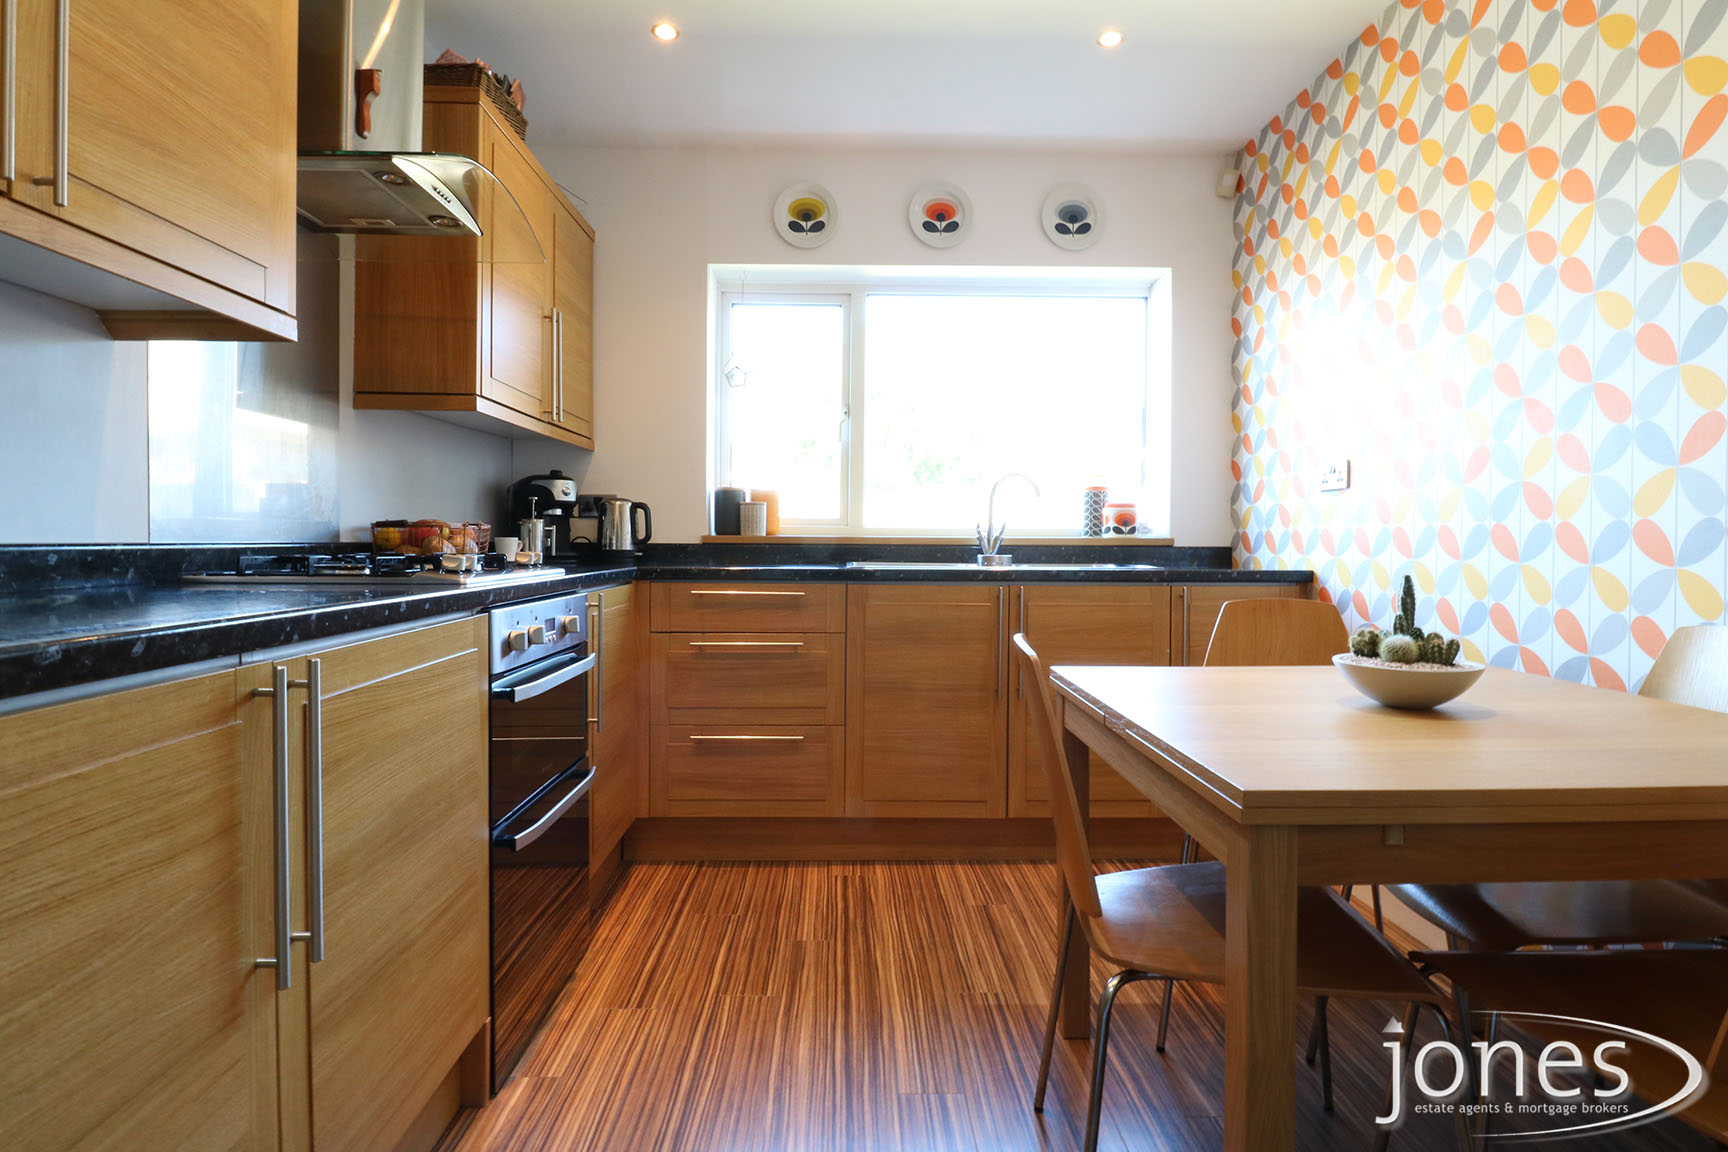 Home for Sale Let - Photo 05 Kielder Drive,Darlington,DL1 2BD